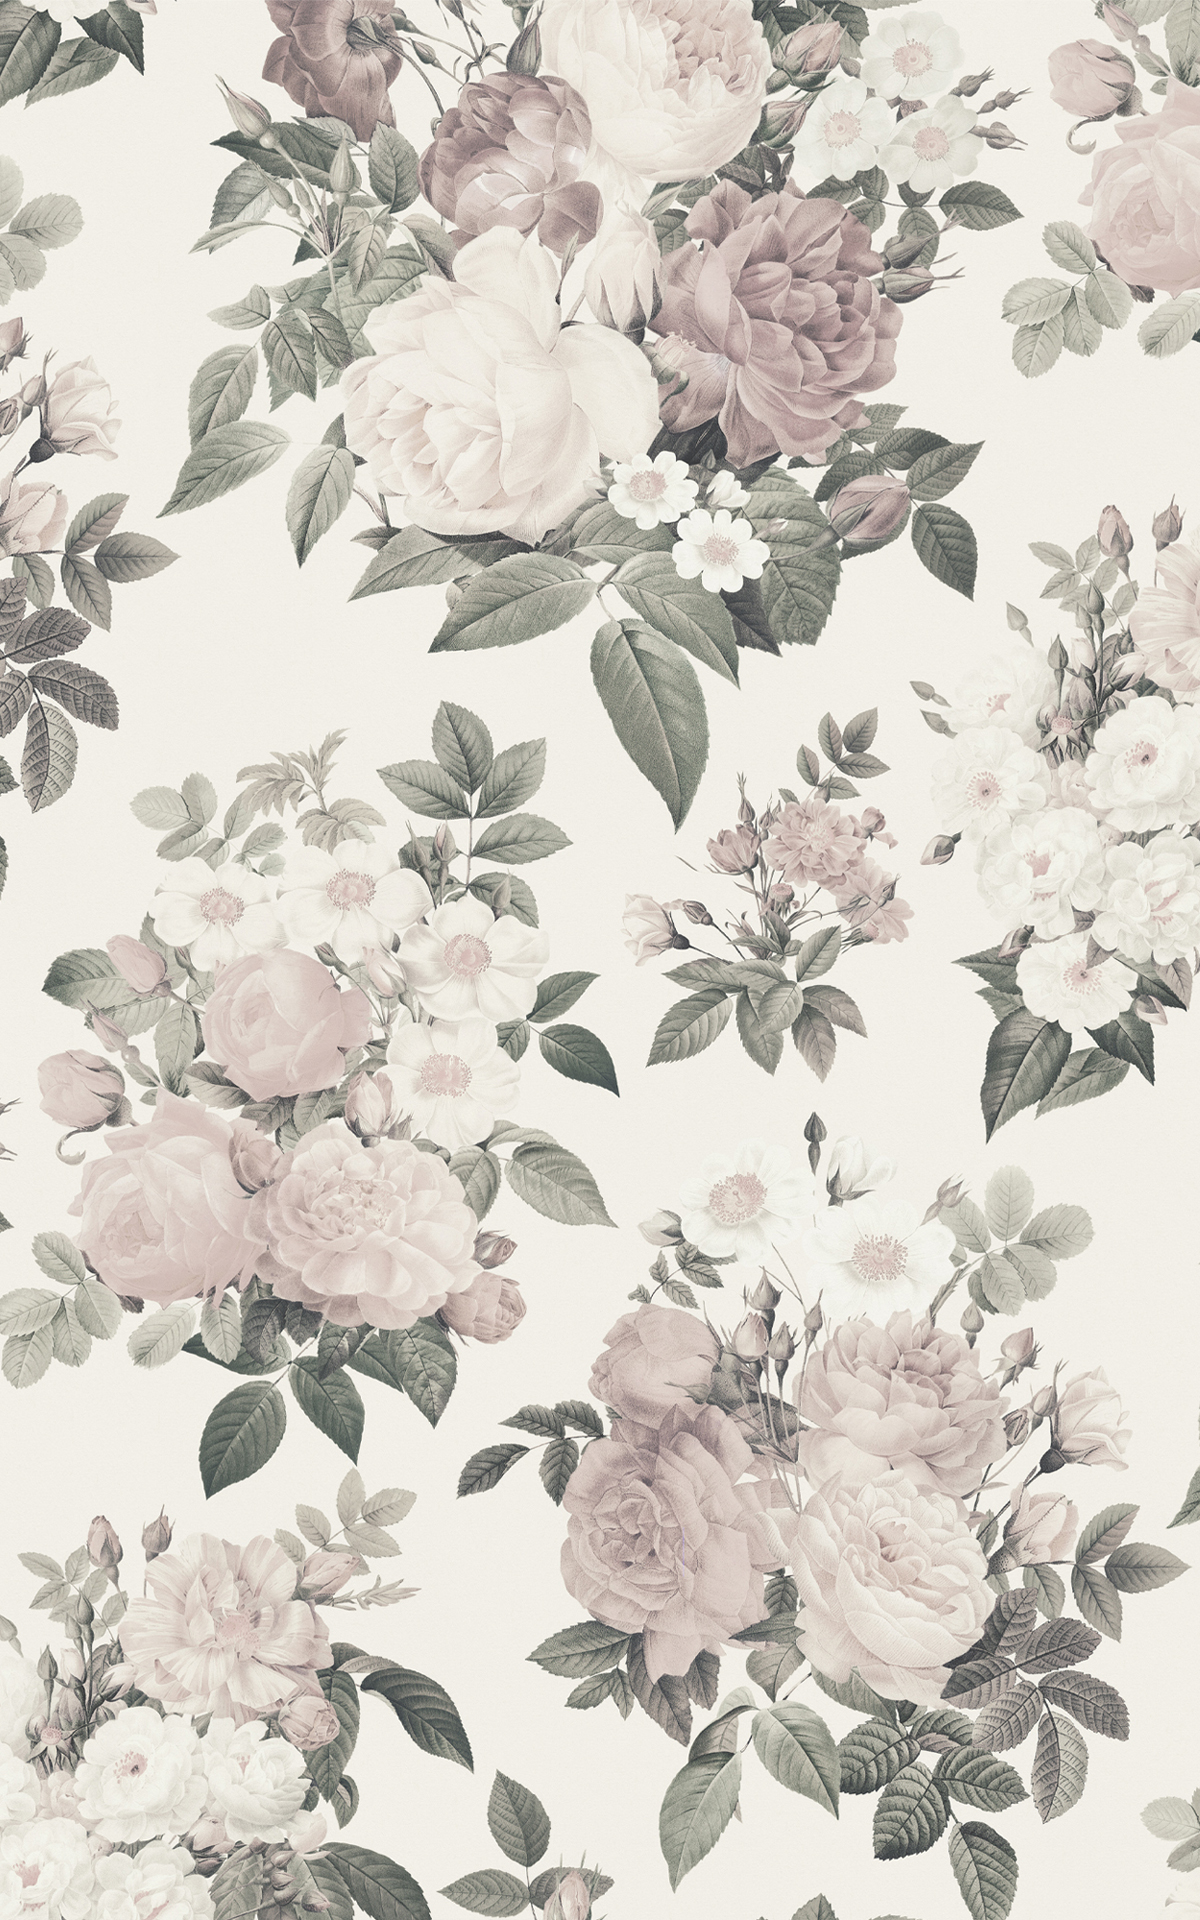 Cream & Pink Rose Vintage Floral Lovely Wallpaper Mural Product Image